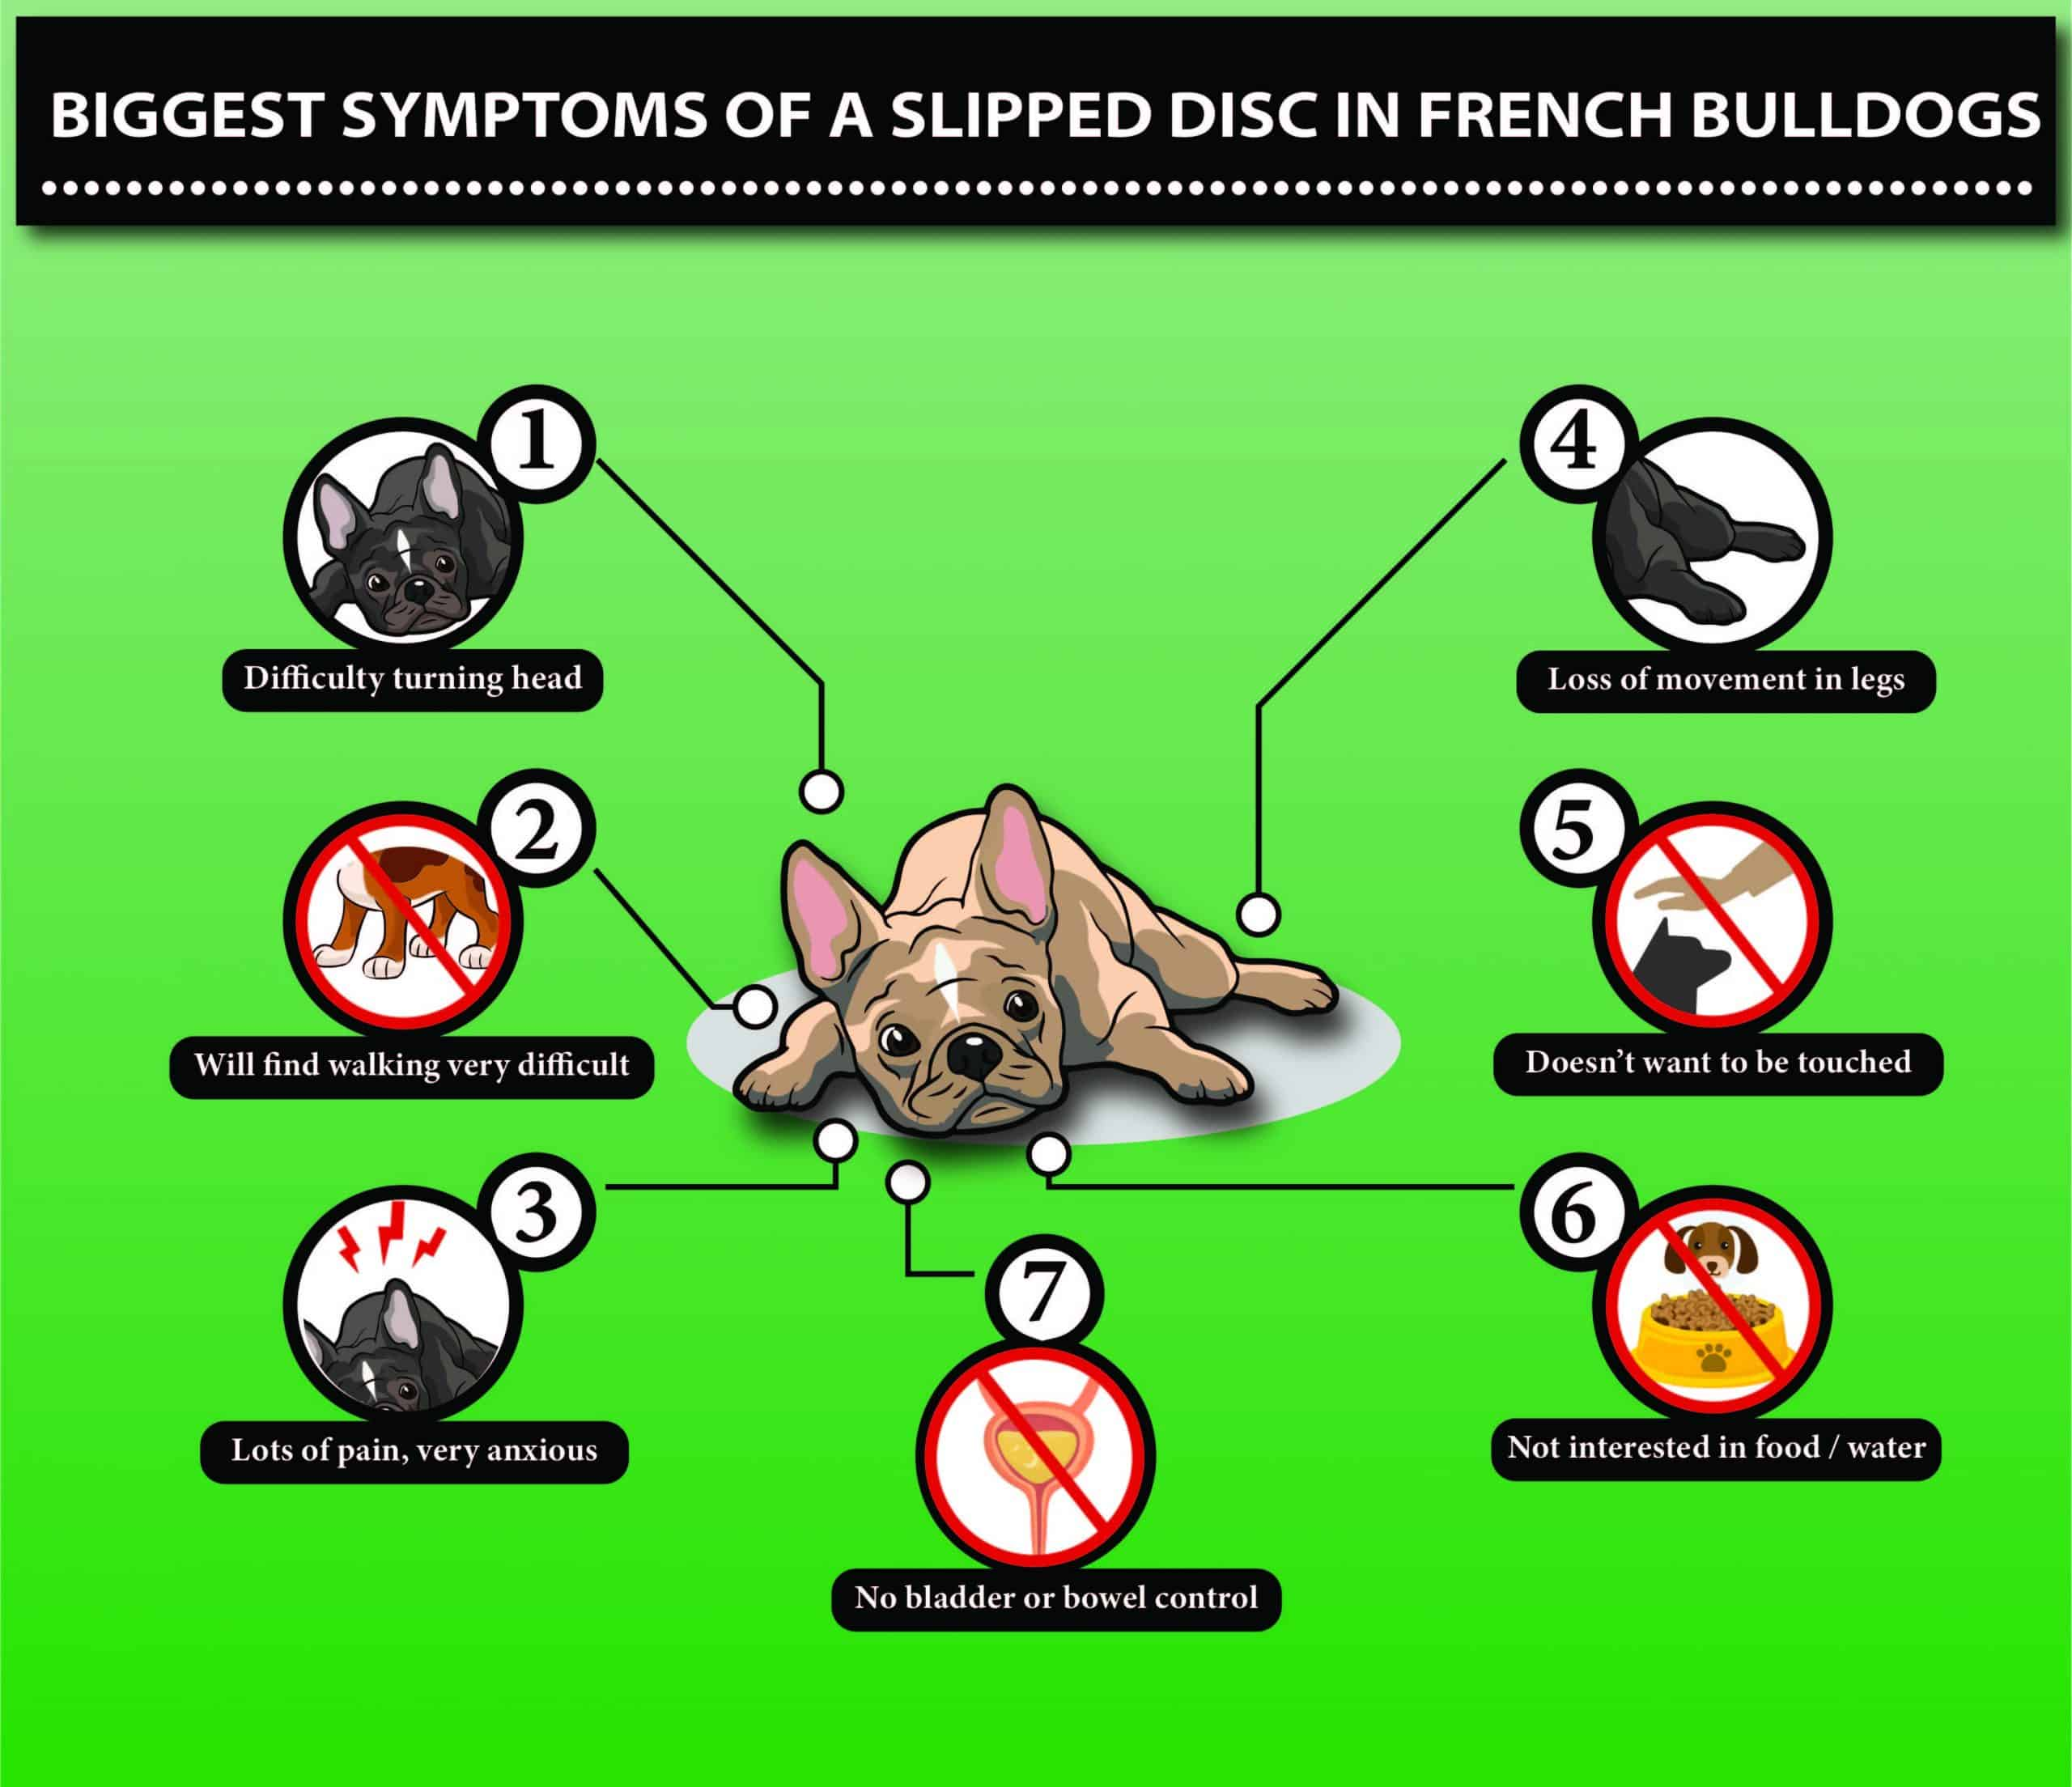 7 symptoms of slipped discs in French Bulldog